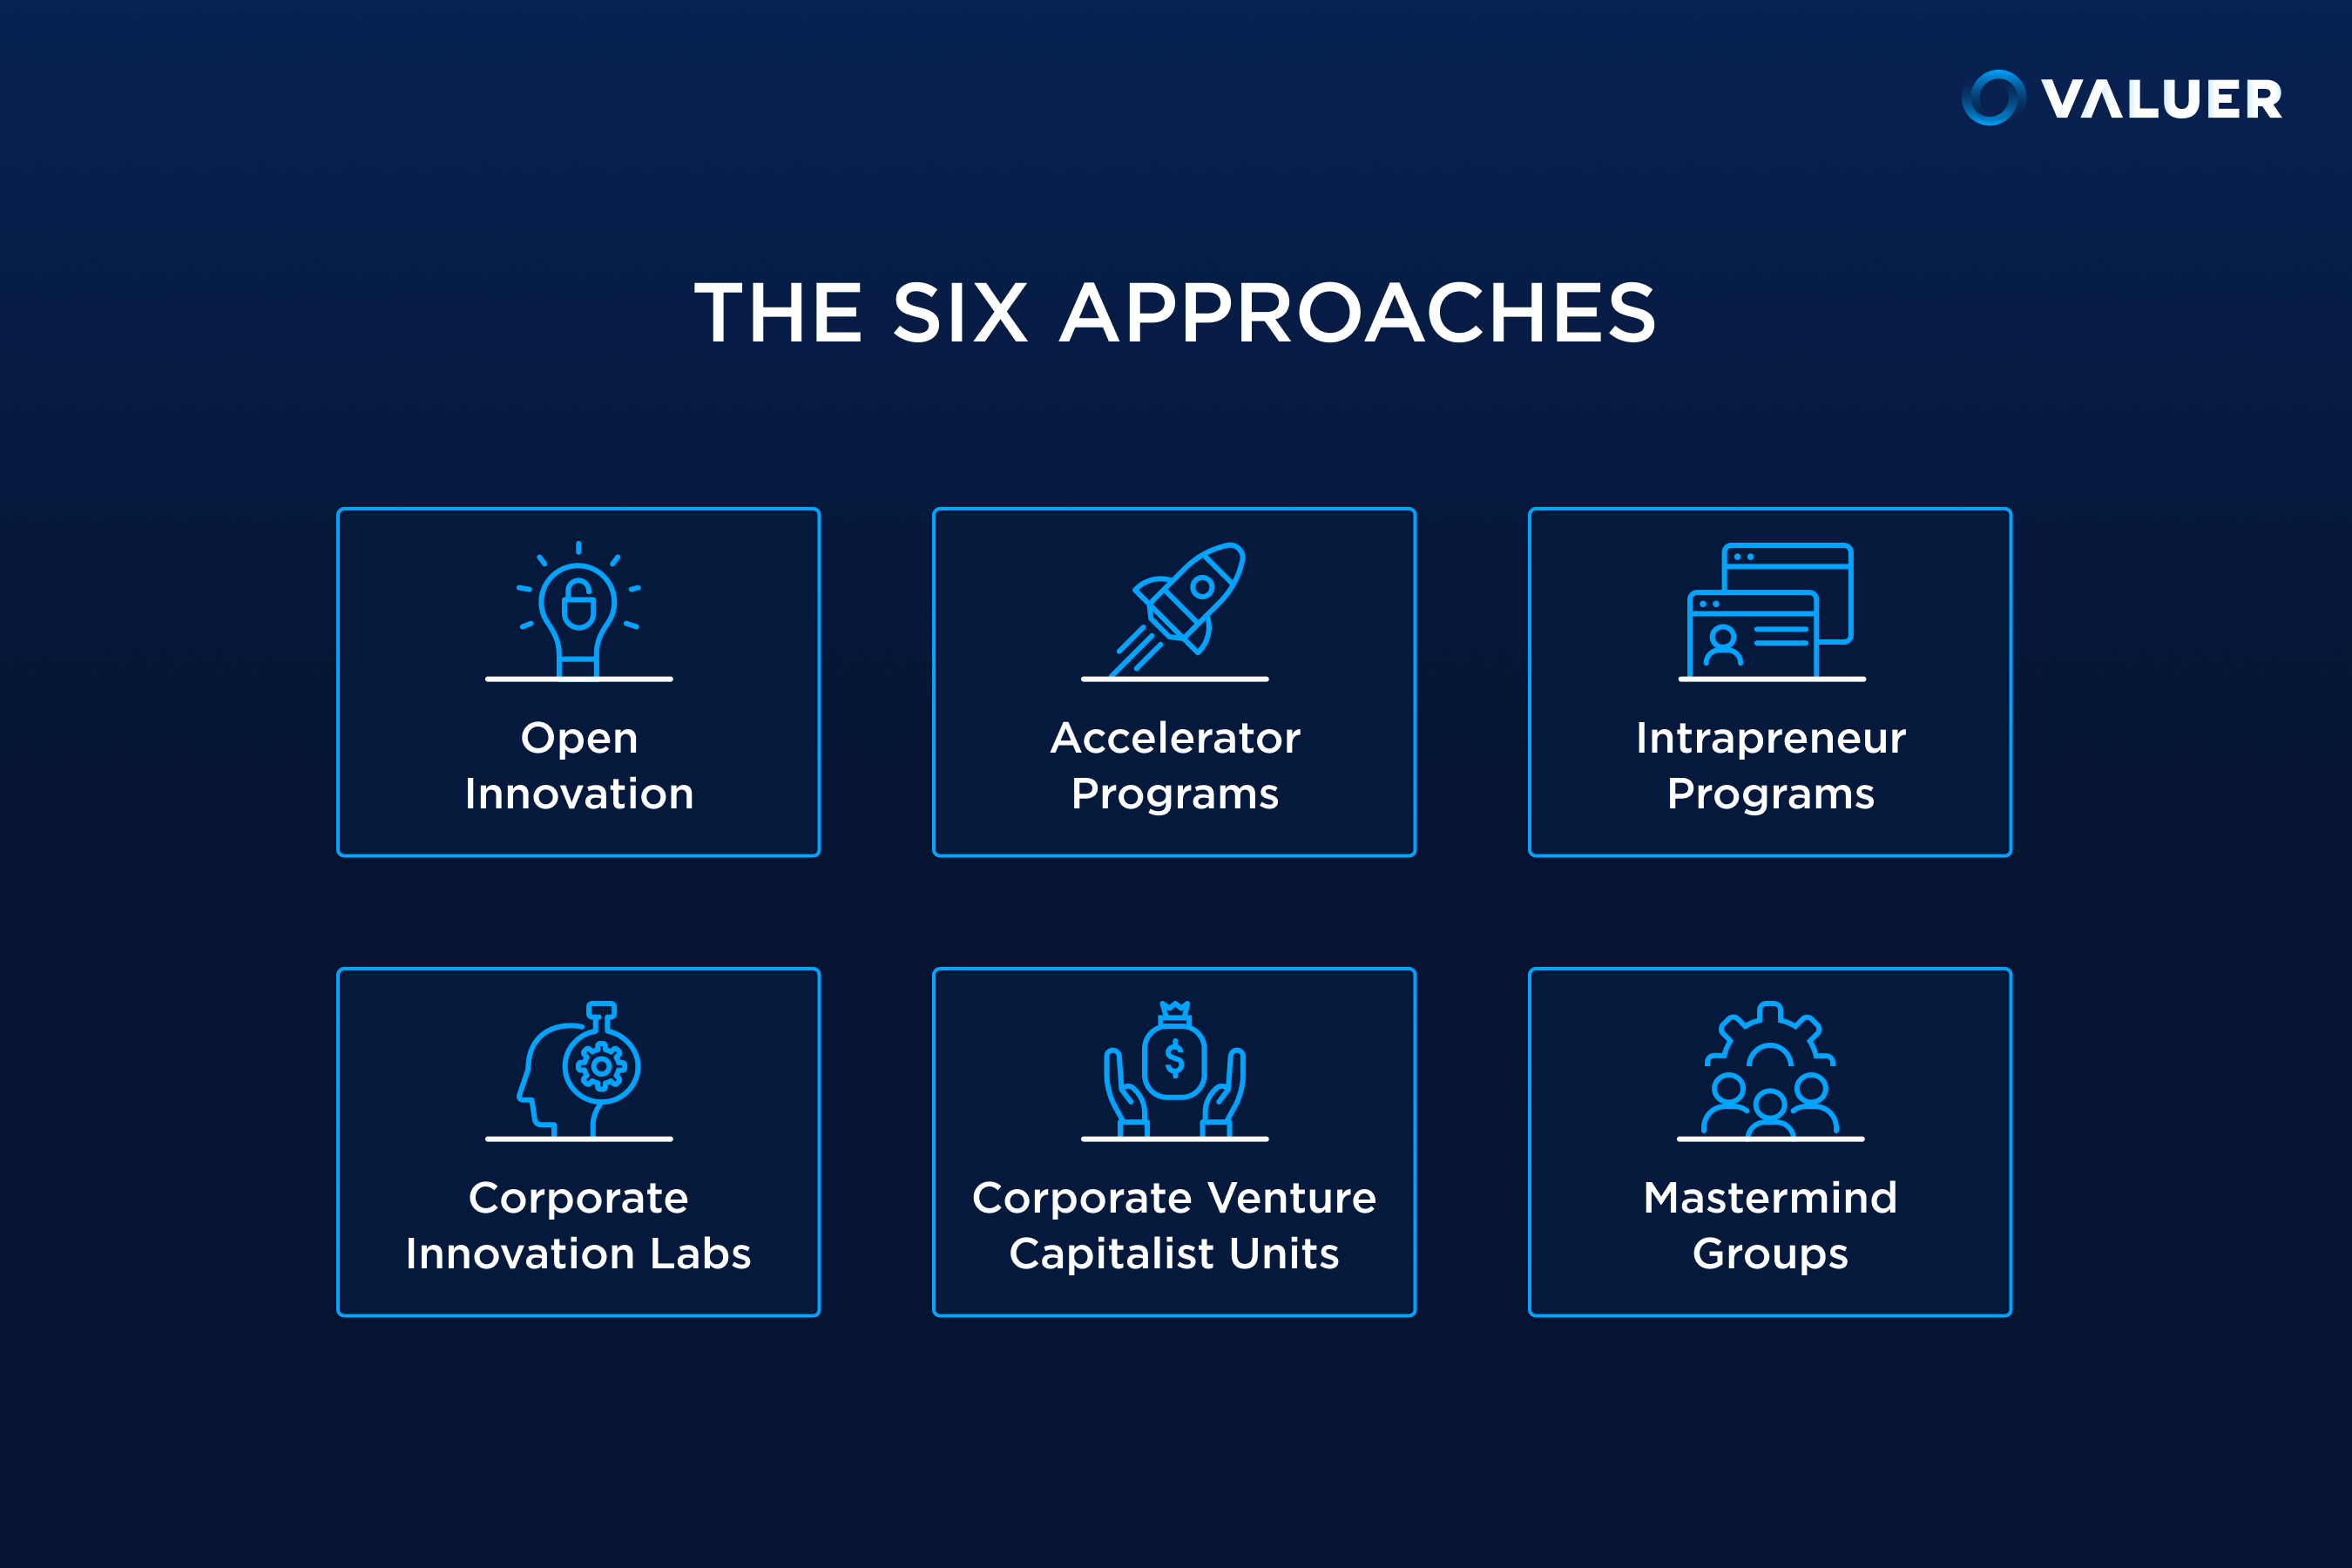 The Six Approaches to corporate innovation